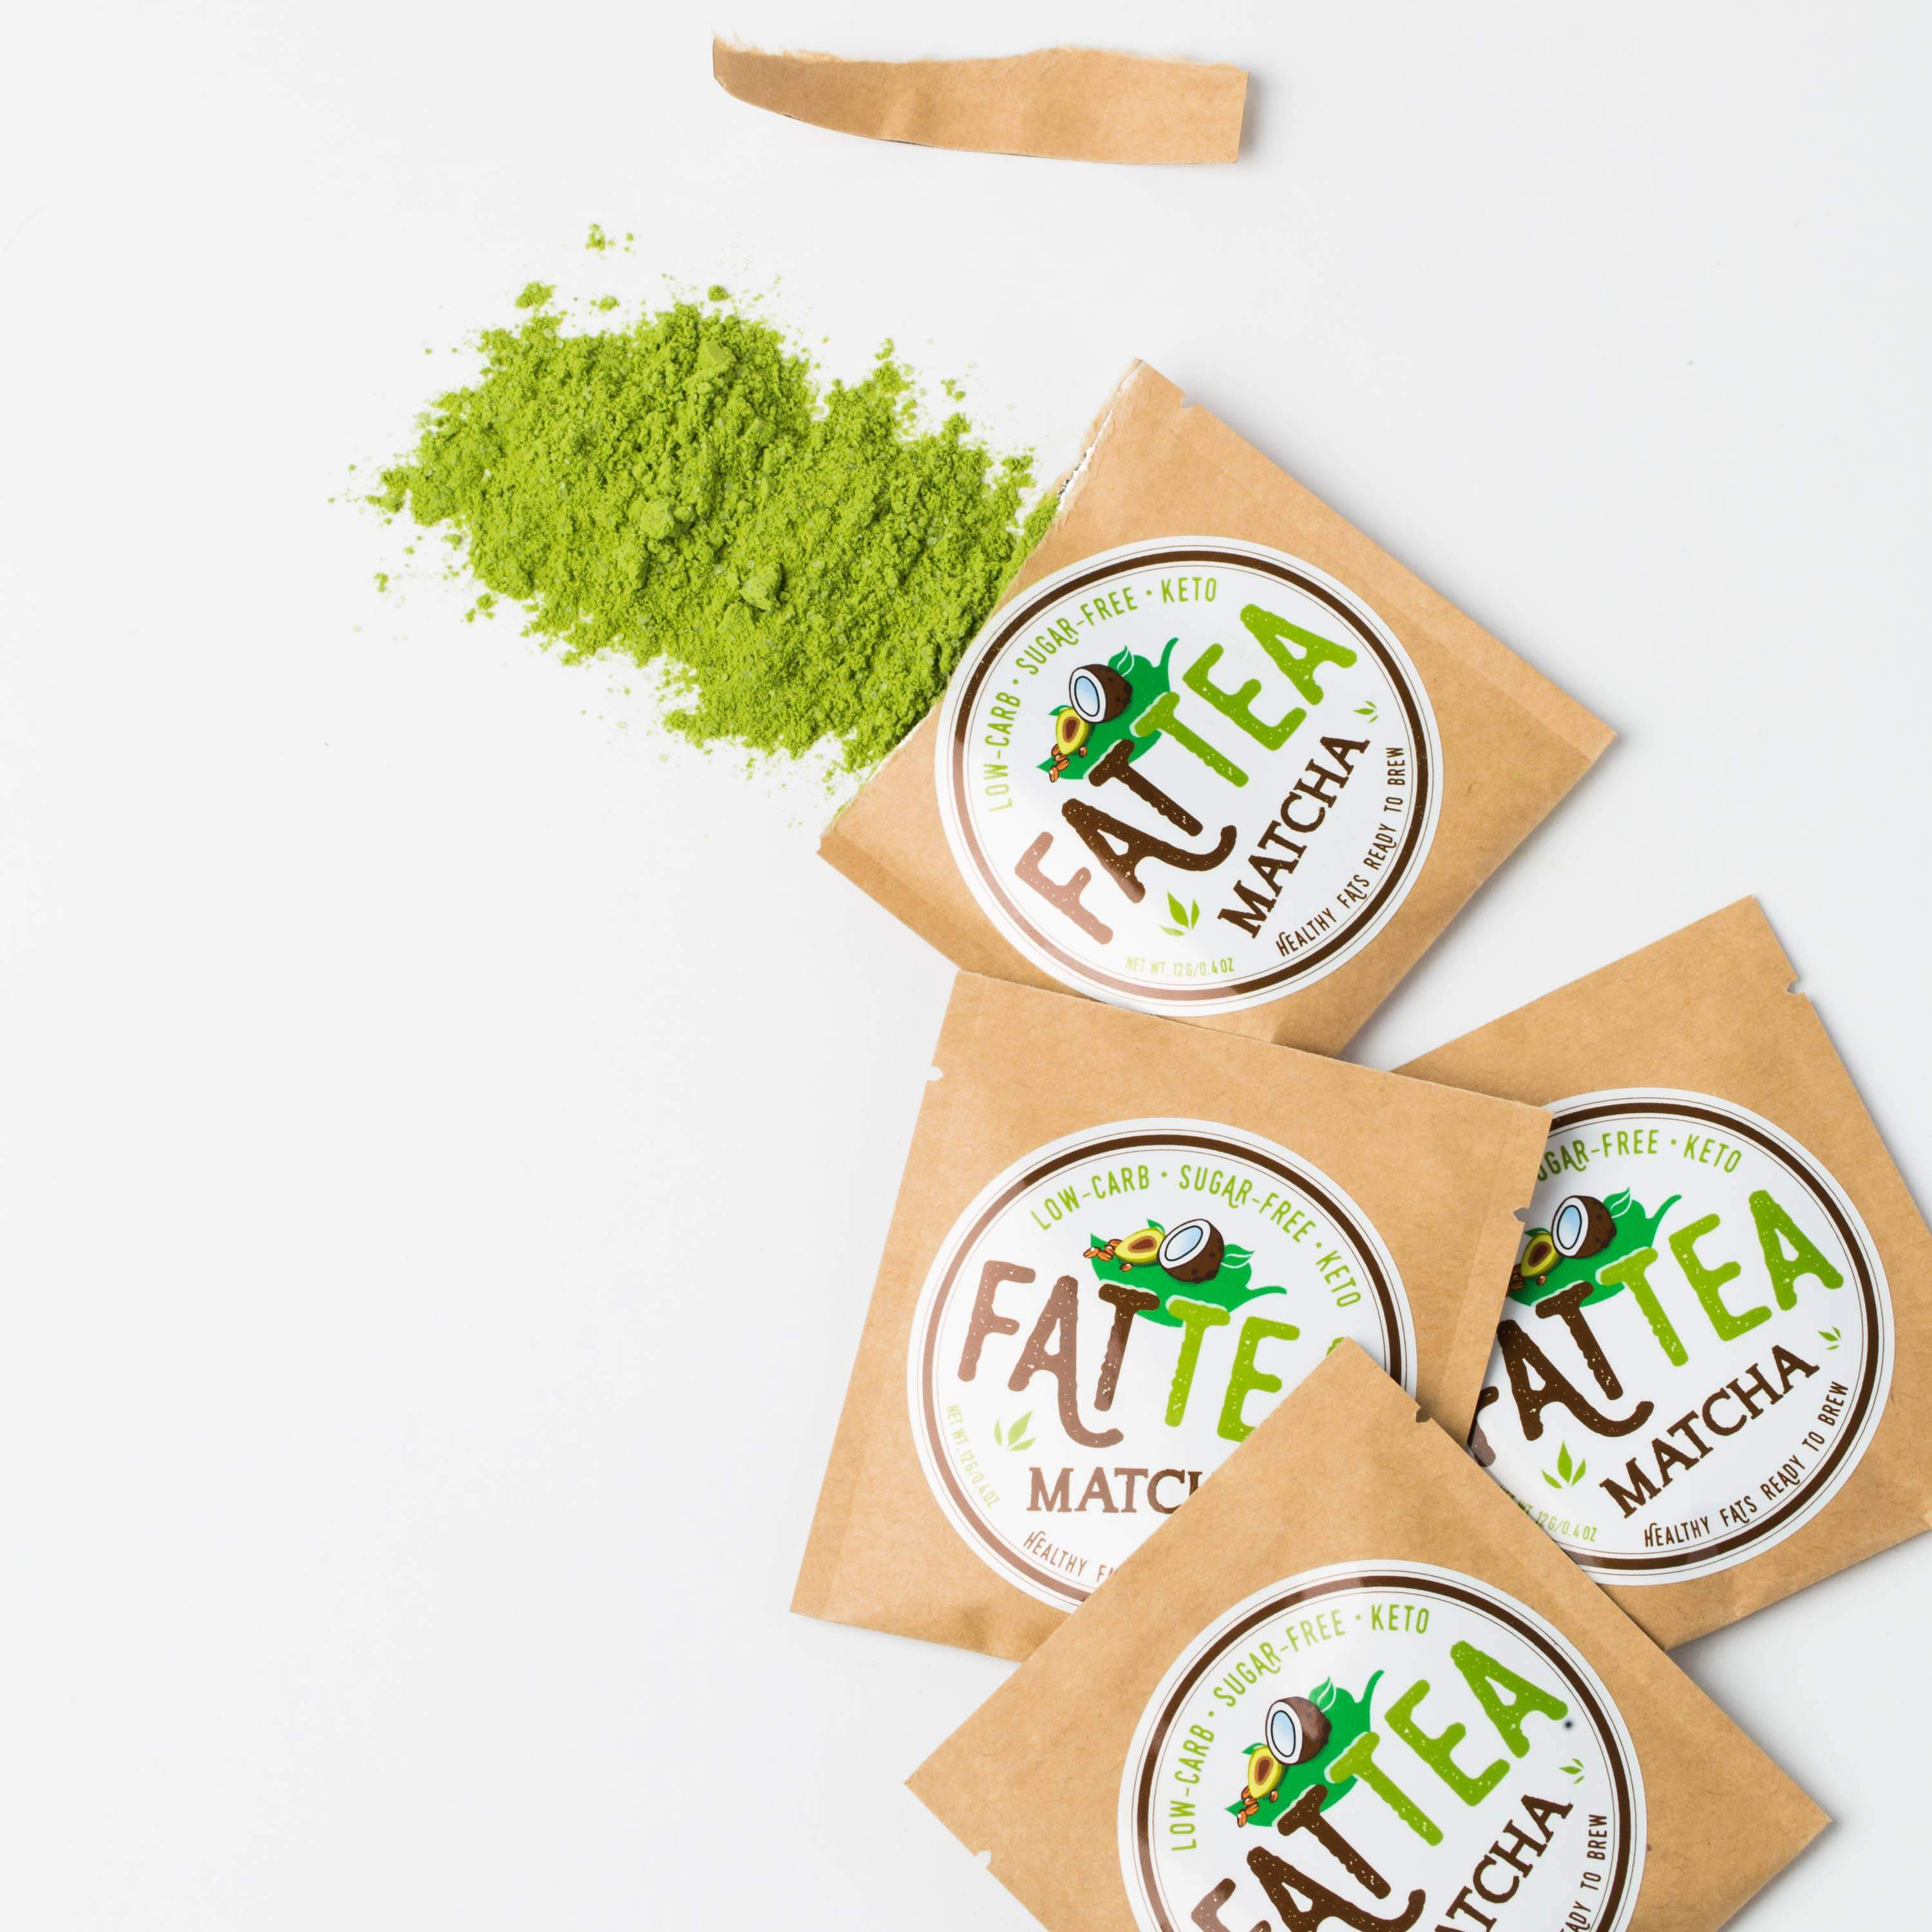 Fat Snax Best Tasting Keto Matcha Fat Tea Powder with MCTs